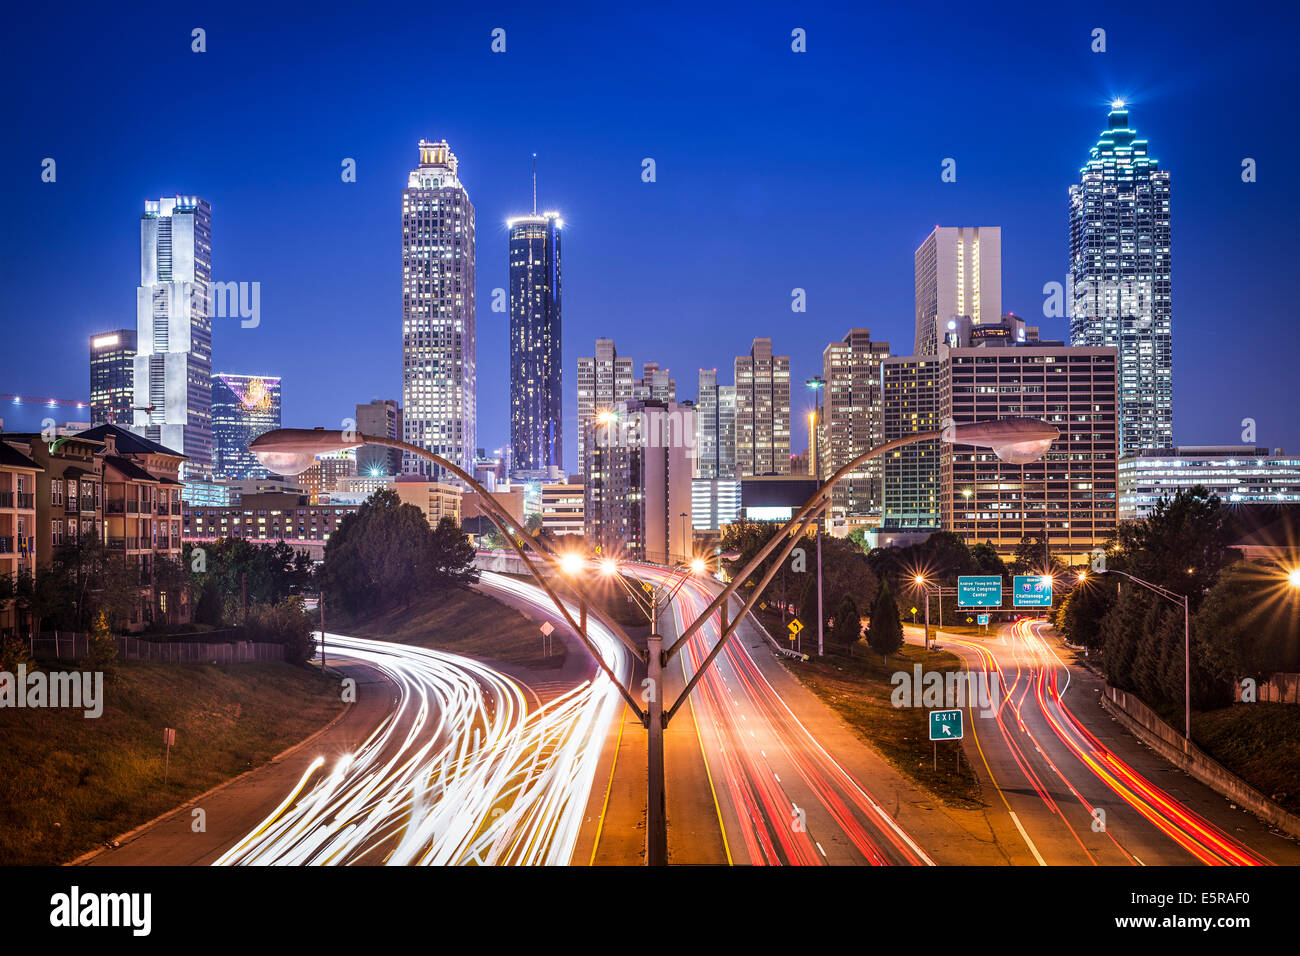 atlanta georgia usa skyline at night stock photo 72427908 alamy. Black Bedroom Furniture Sets. Home Design Ideas